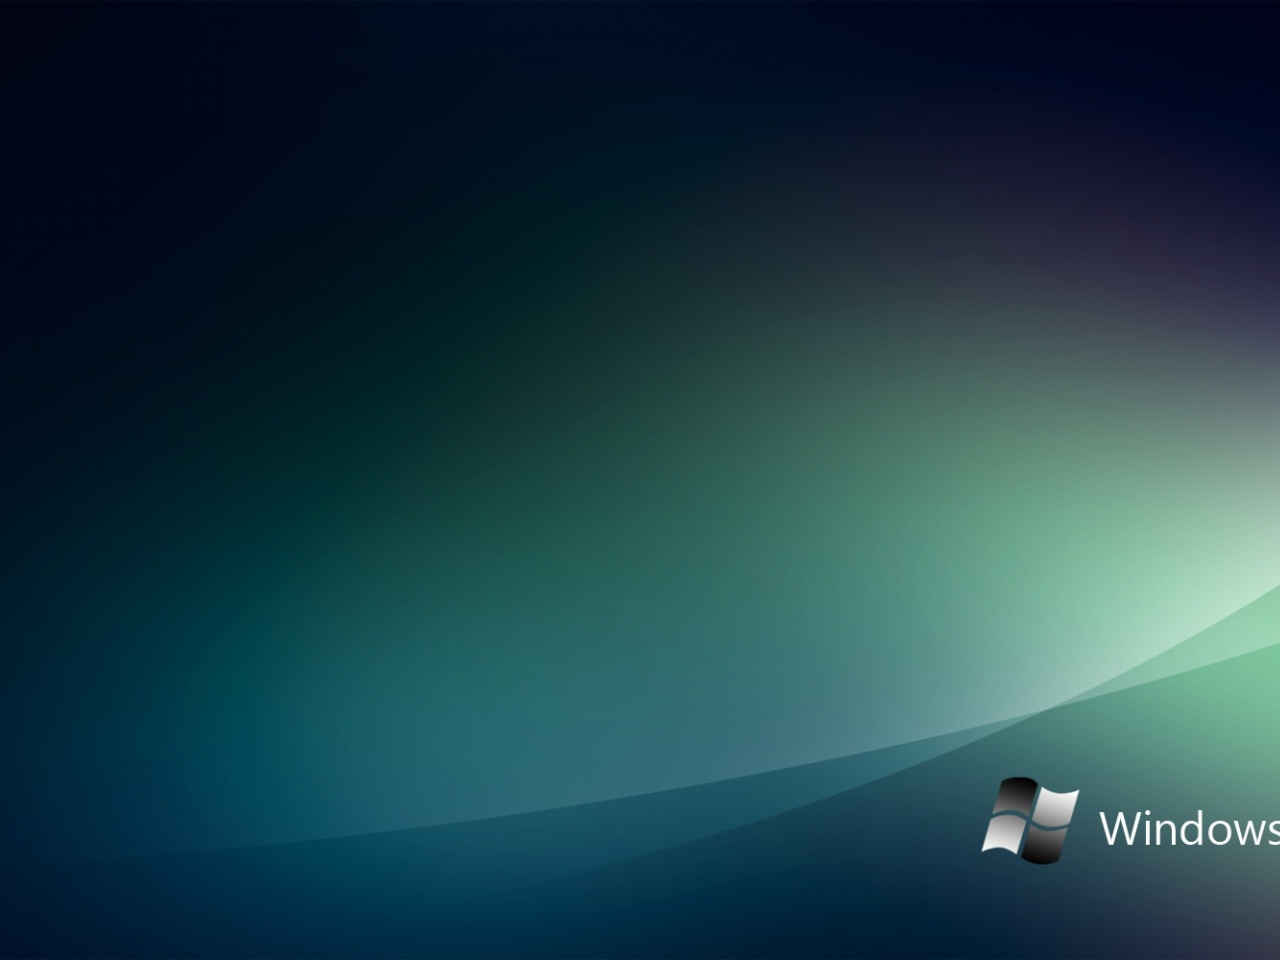 7680x4320 Wallpapers 1280x960